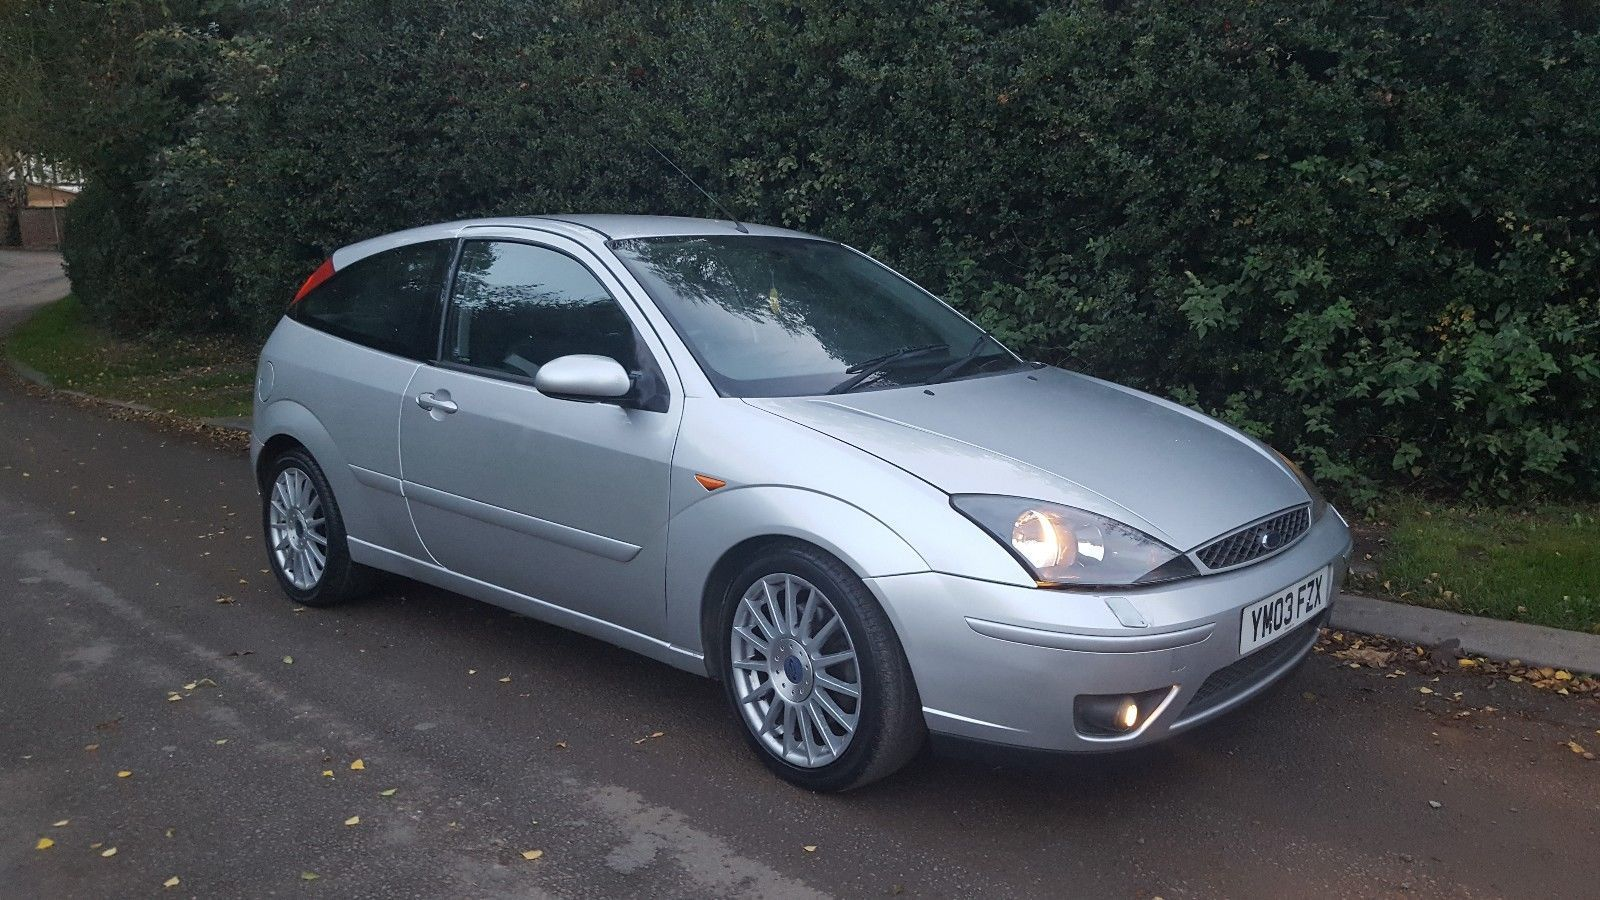 This Ford Focus St170 Silver 3 Door Moondust Silver No Reserve Is For Sale Ford Focus Ford Moon Dust